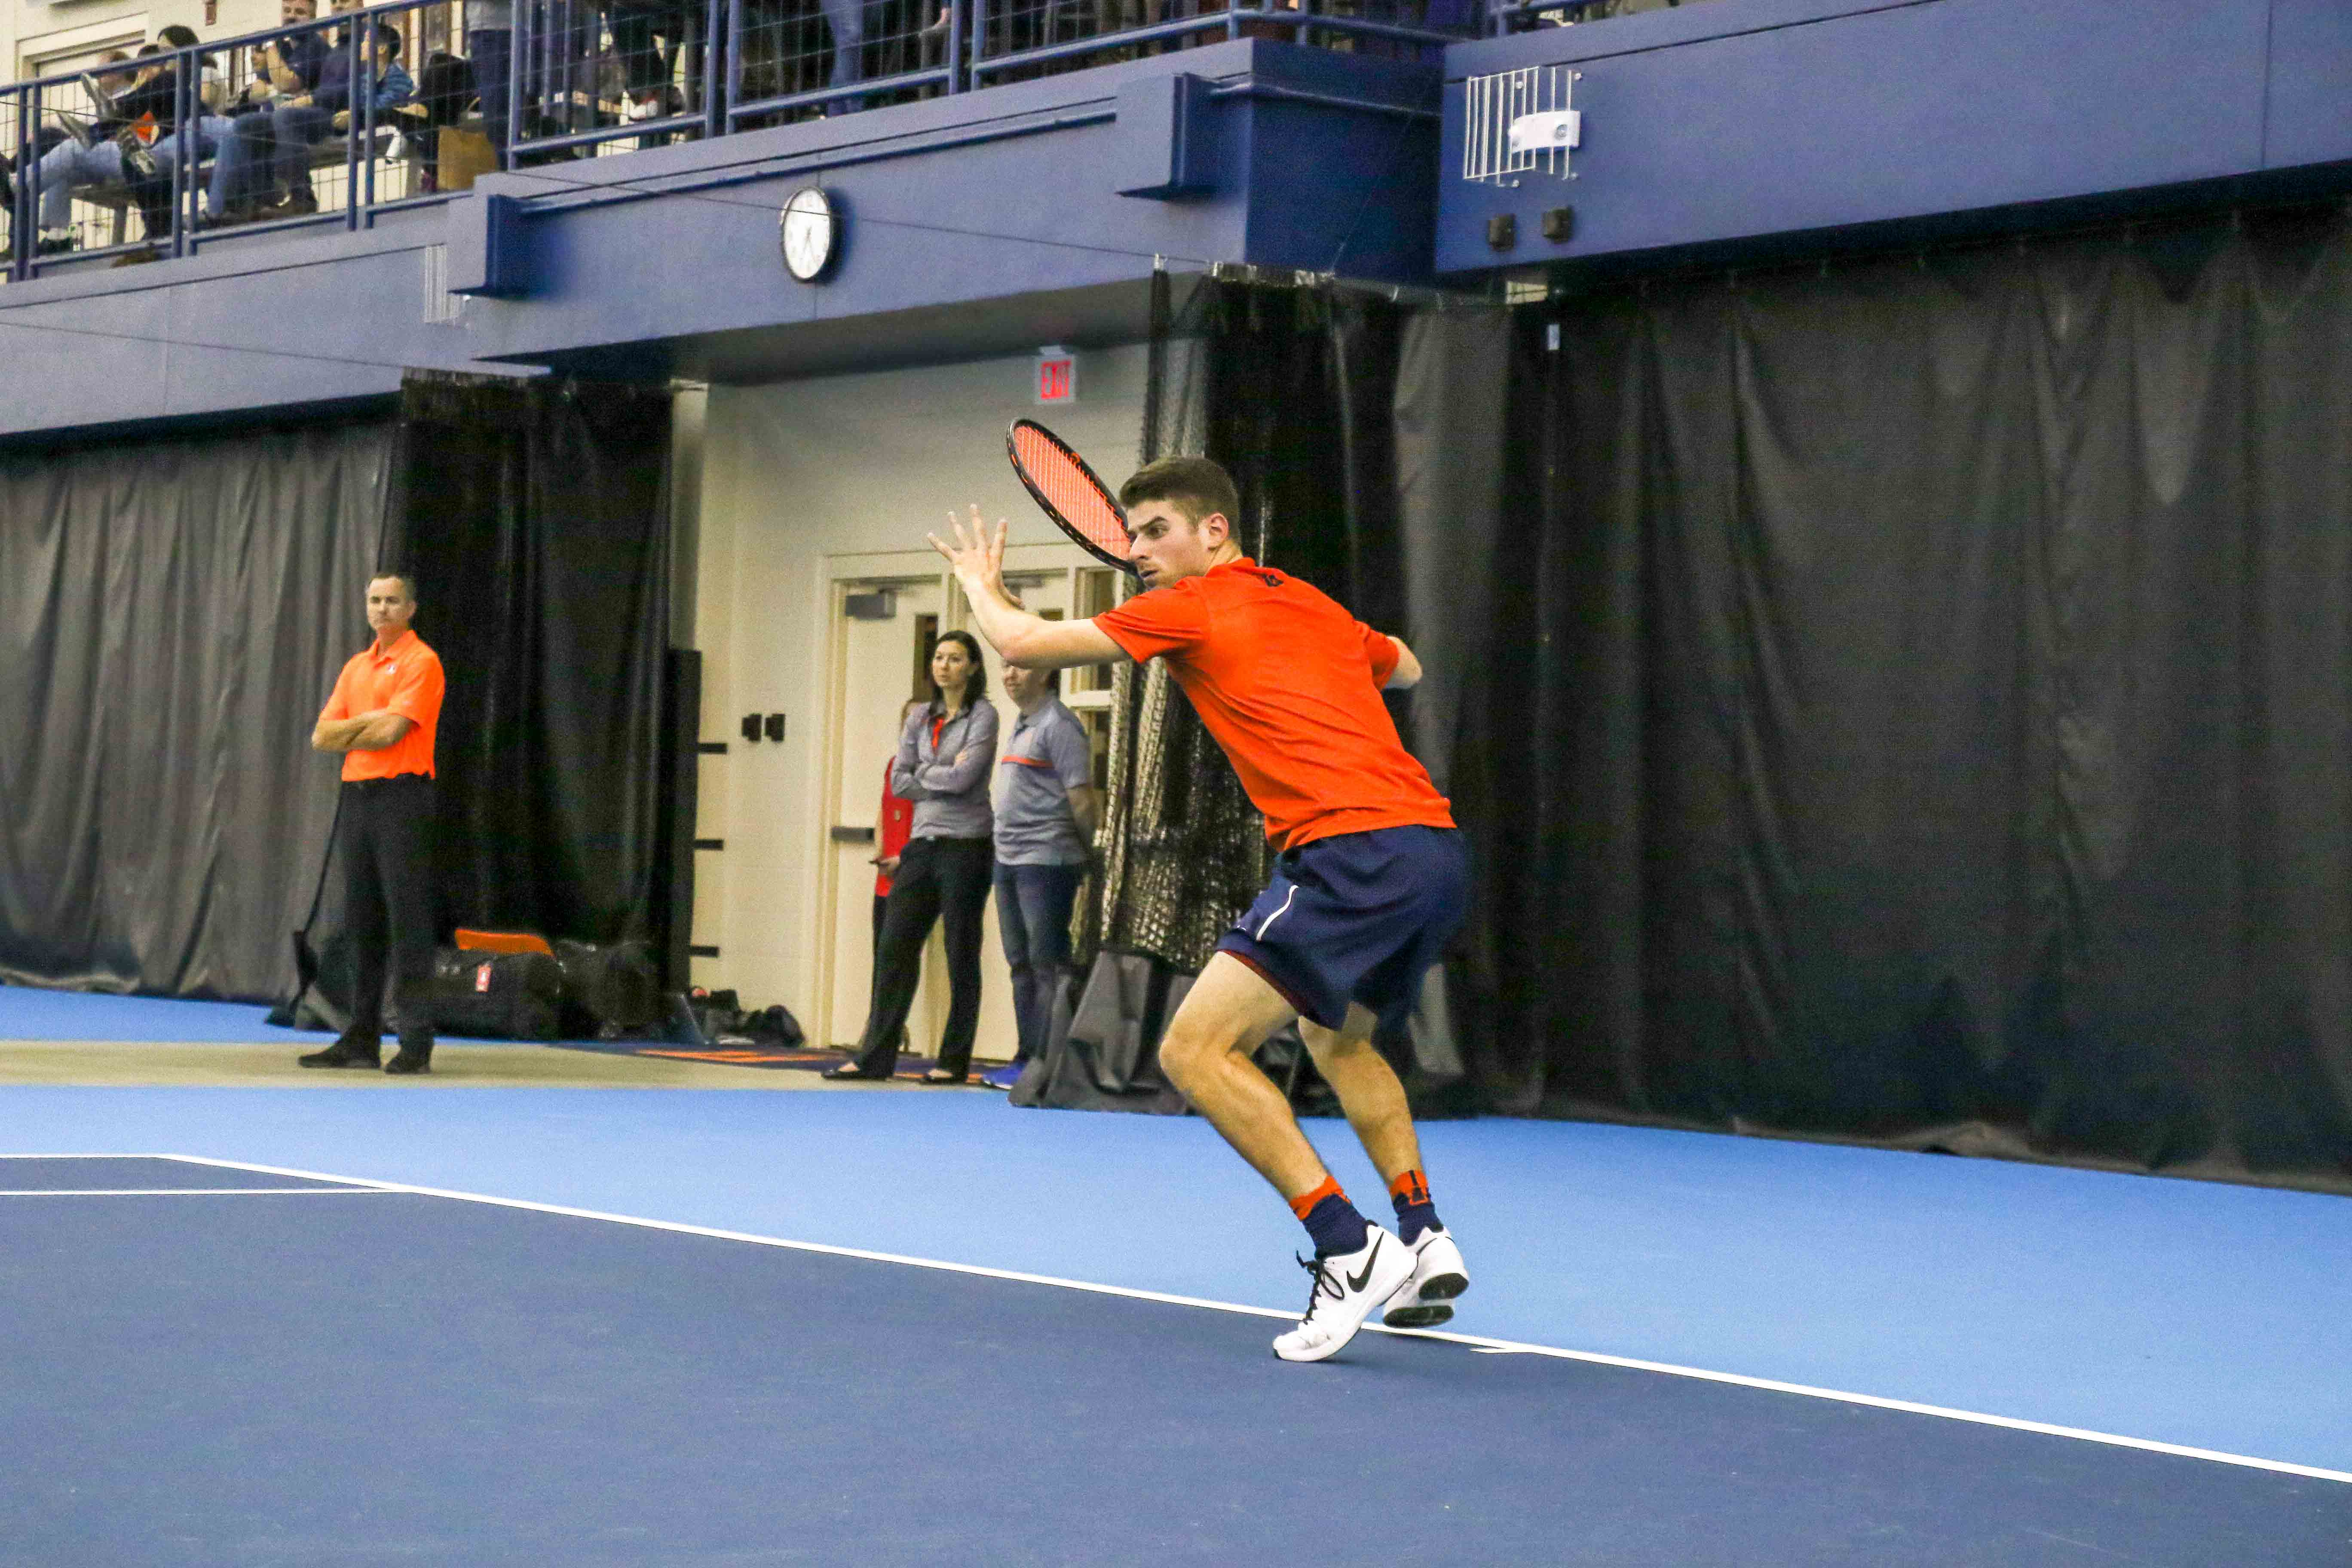 Illinois'  Aron Hiltzik prepares to hit a forehand against Kentucky on Feb. 24 at the Atkins Tennis Center. The team will take on Michigan and Michigan State on the road this weekend.